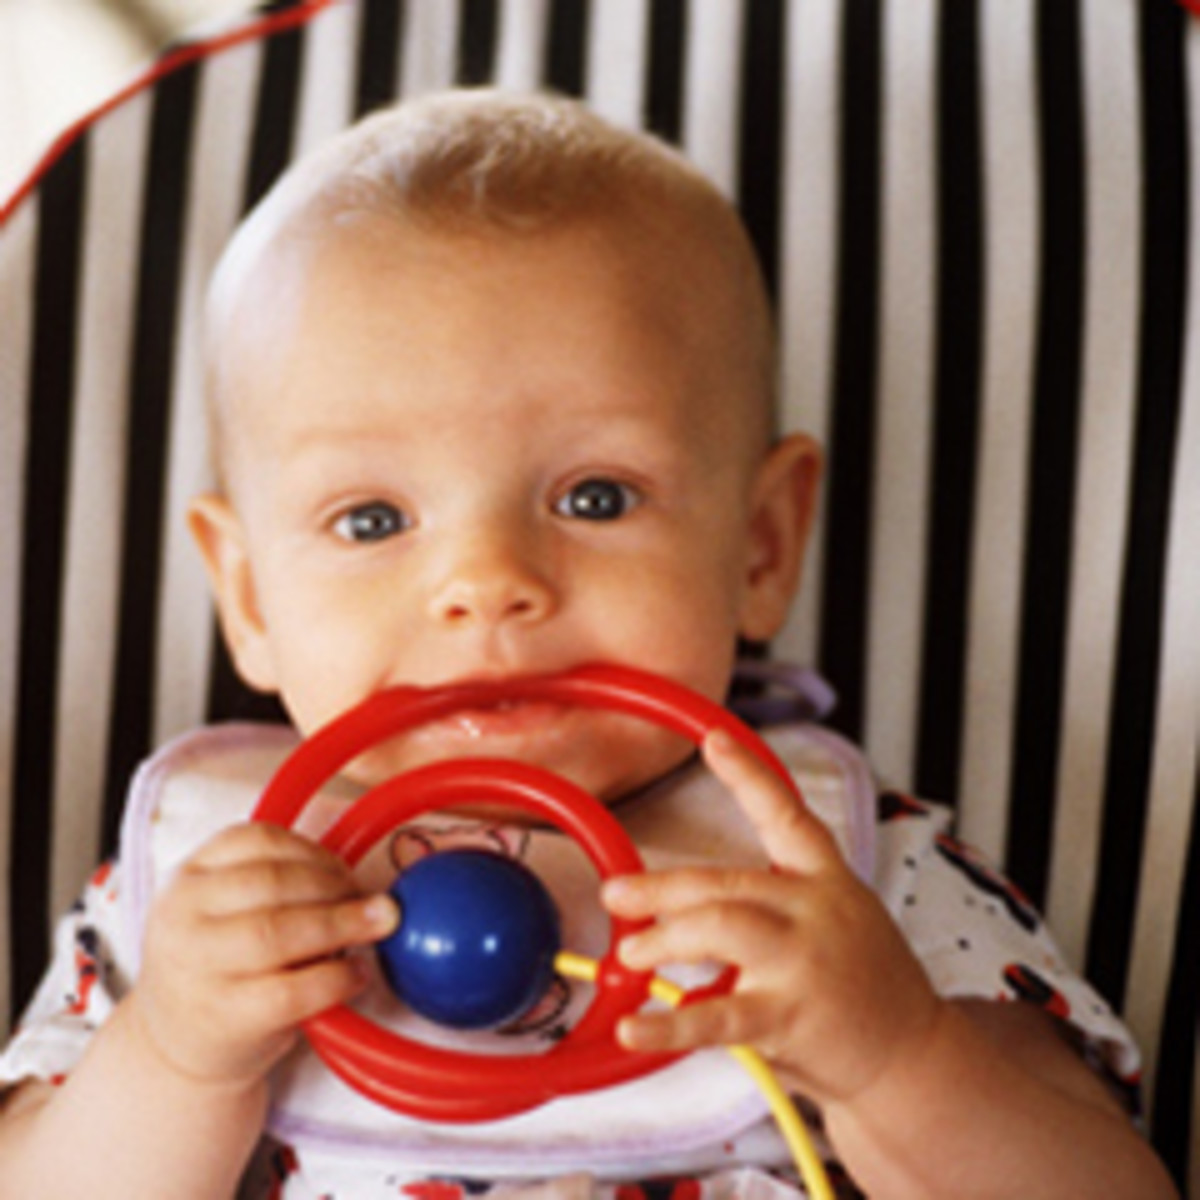 Child's Play - Educational Baby Toys are Beneficial For Good Early Learning